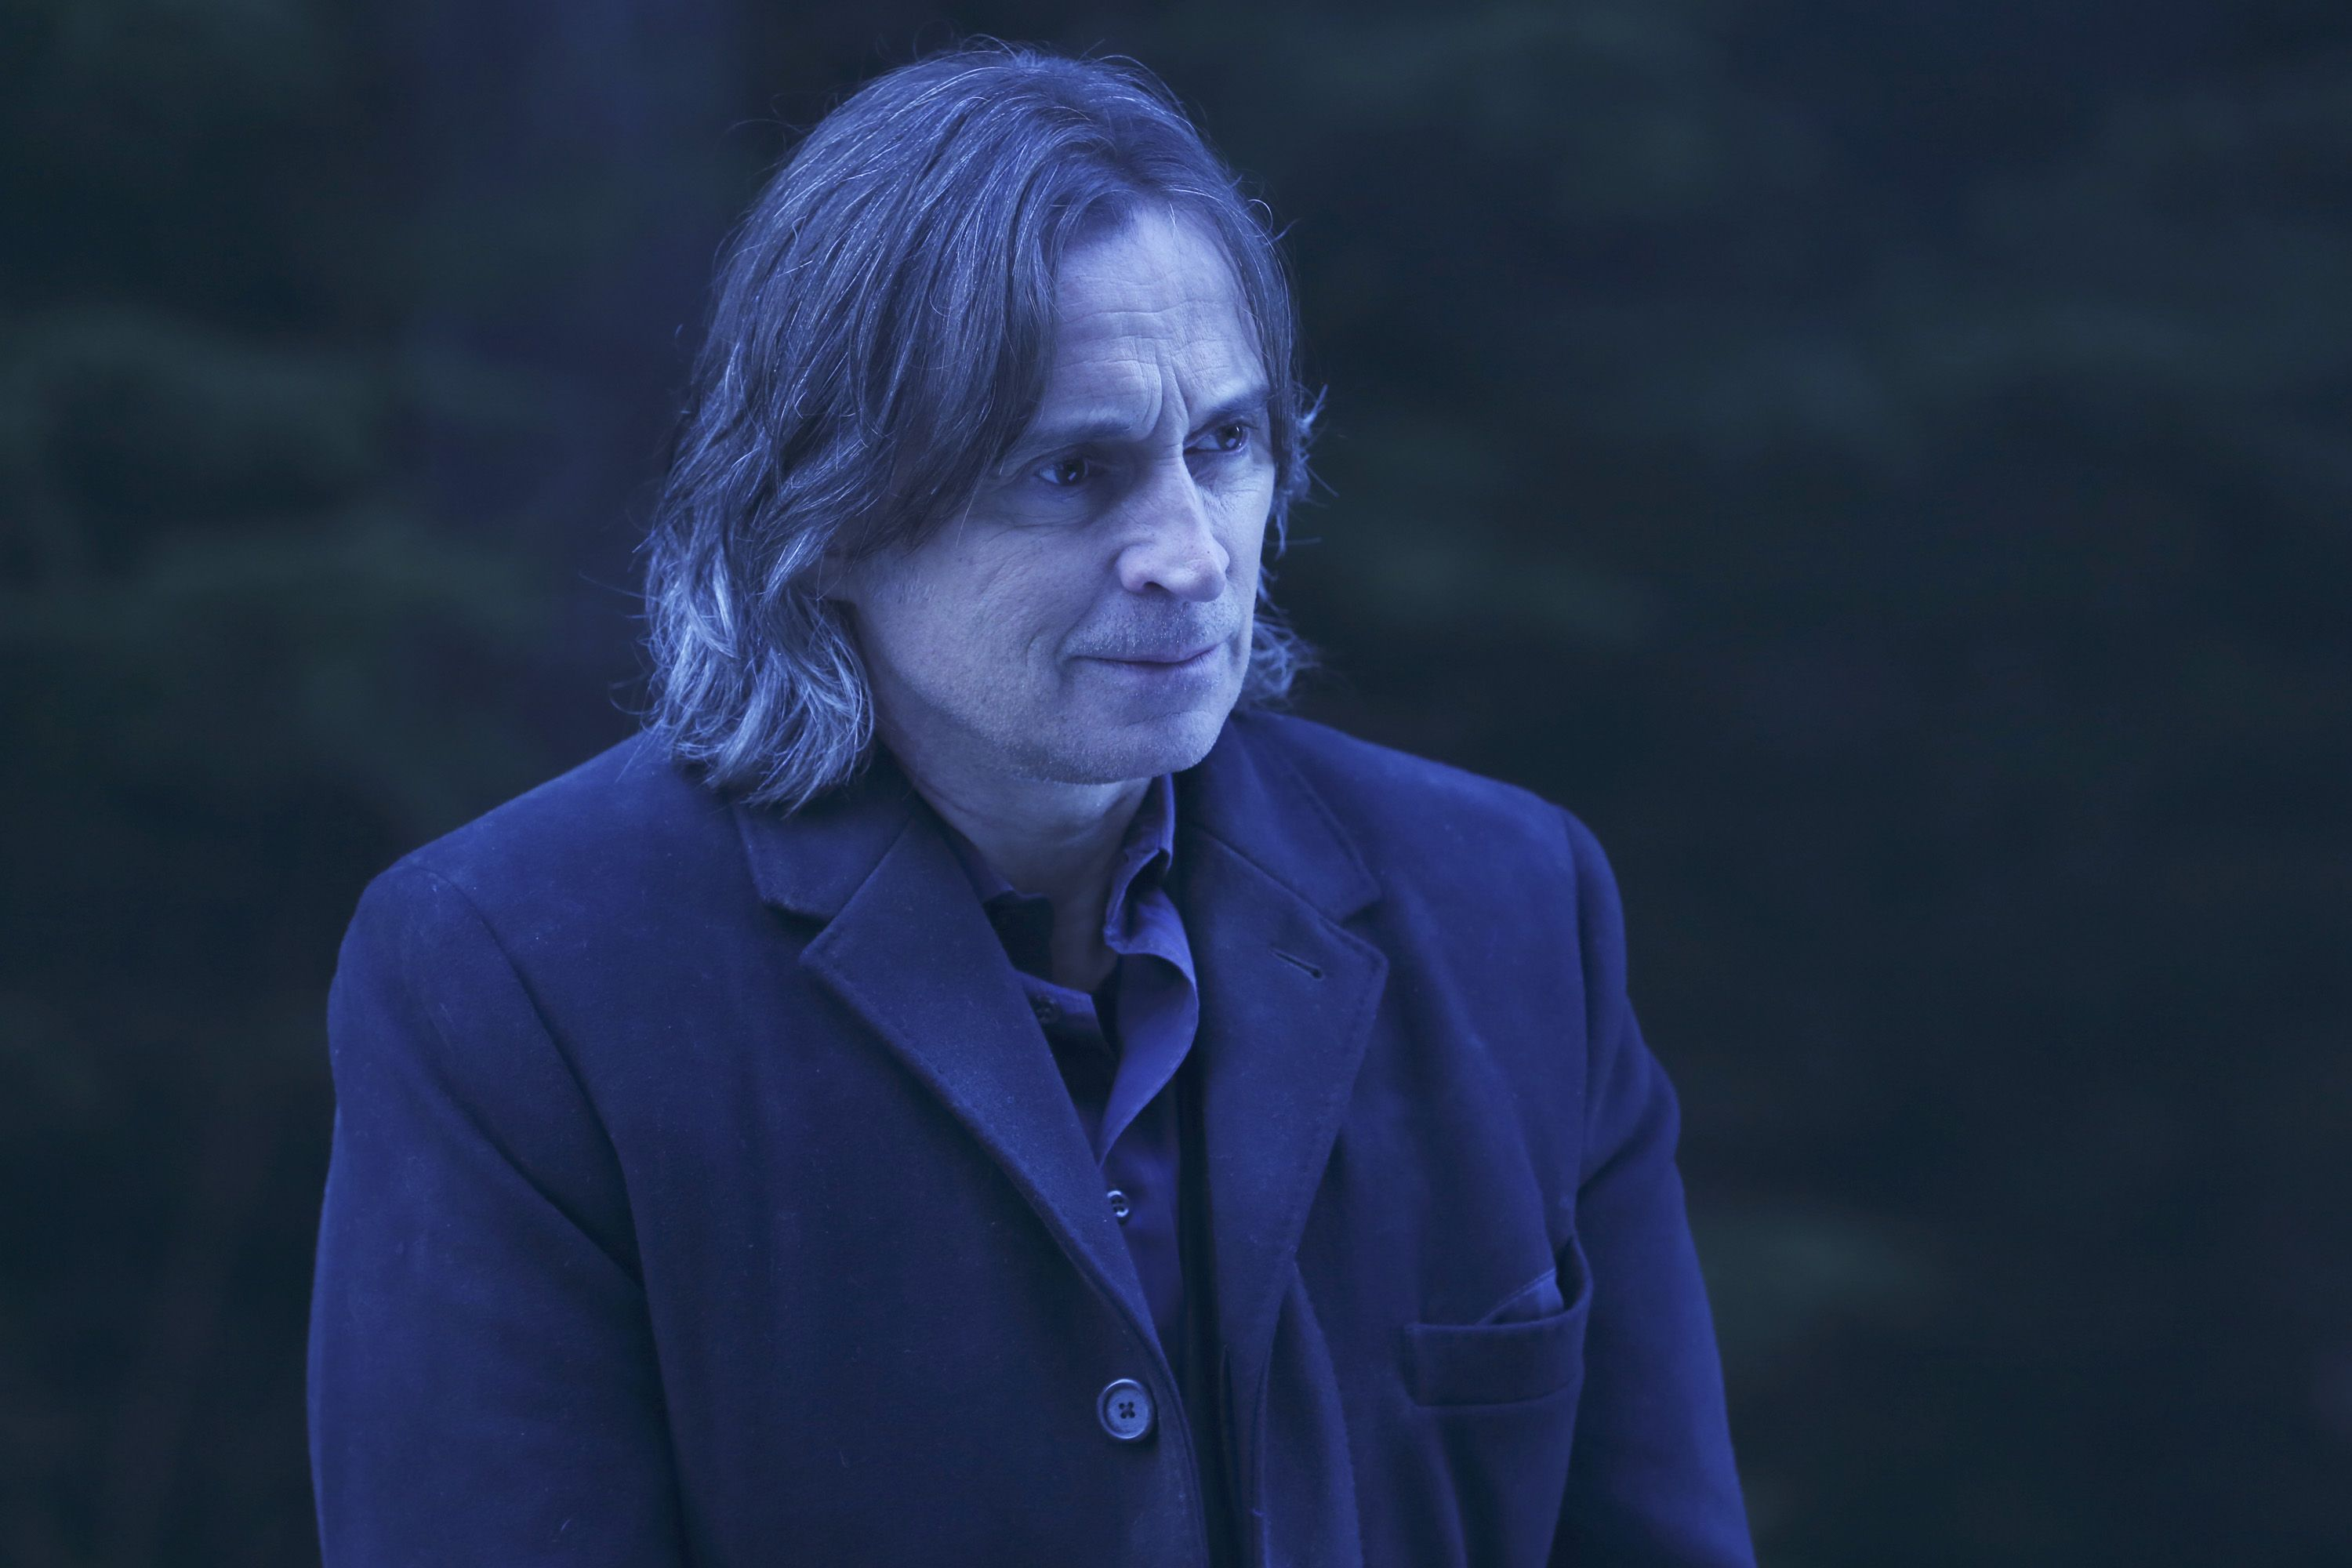 Once Upon A Time 4x12 'Darkness On The Edge Of Town' Promotional Photo